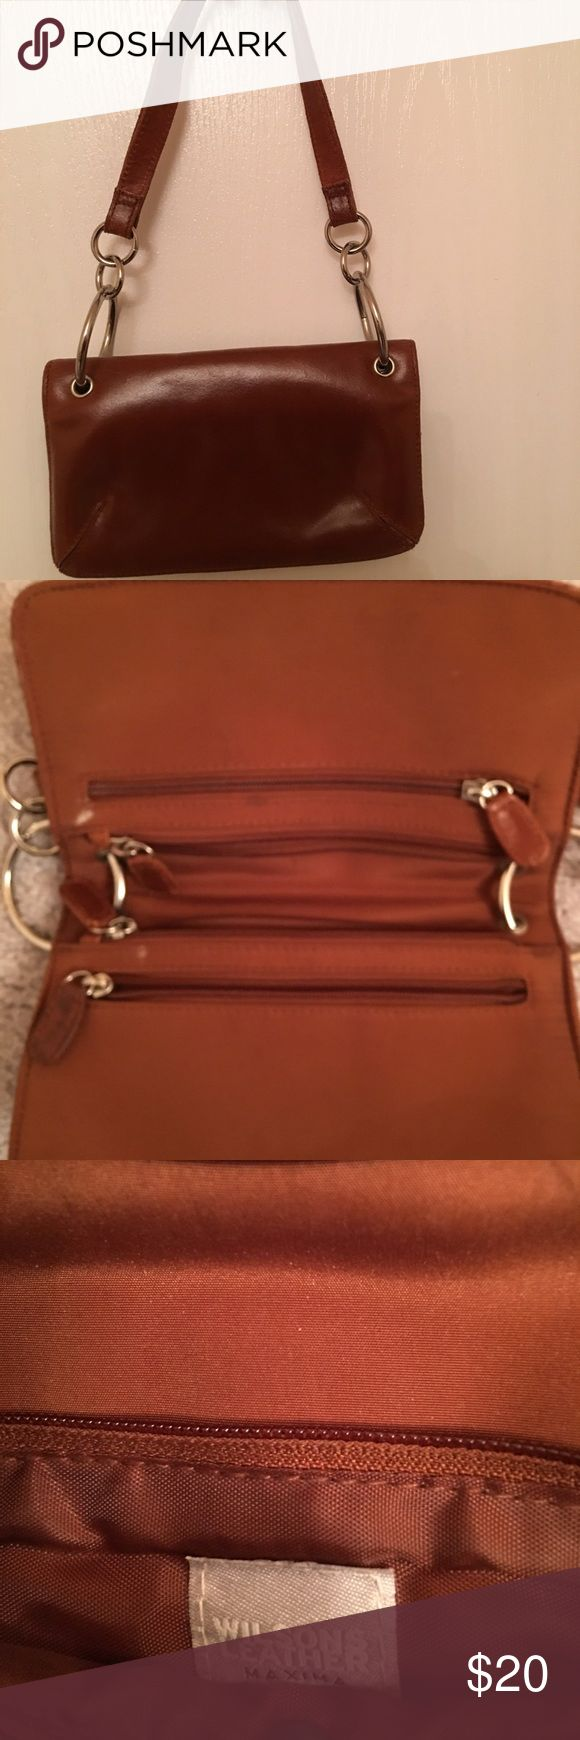 WILSON LEATHER MINI OVER THE SHOULDER PURSE WILSON LEATHER OVER THE SHOULDER MINI PURSE WALLET WILSON LEATHER Bags Mini Bags